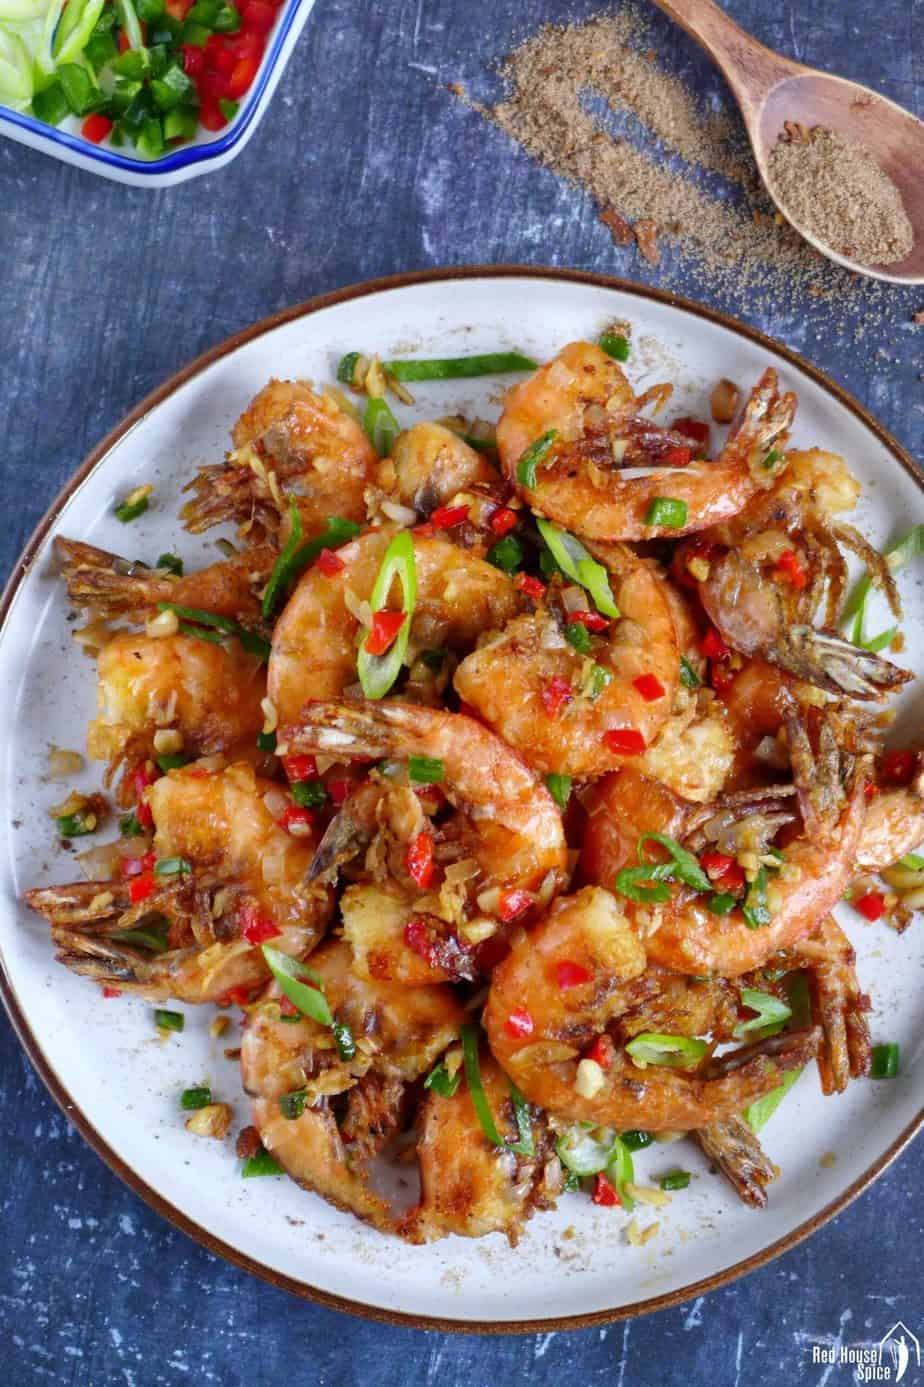 Chinese salt and pepper shrimp in a plate